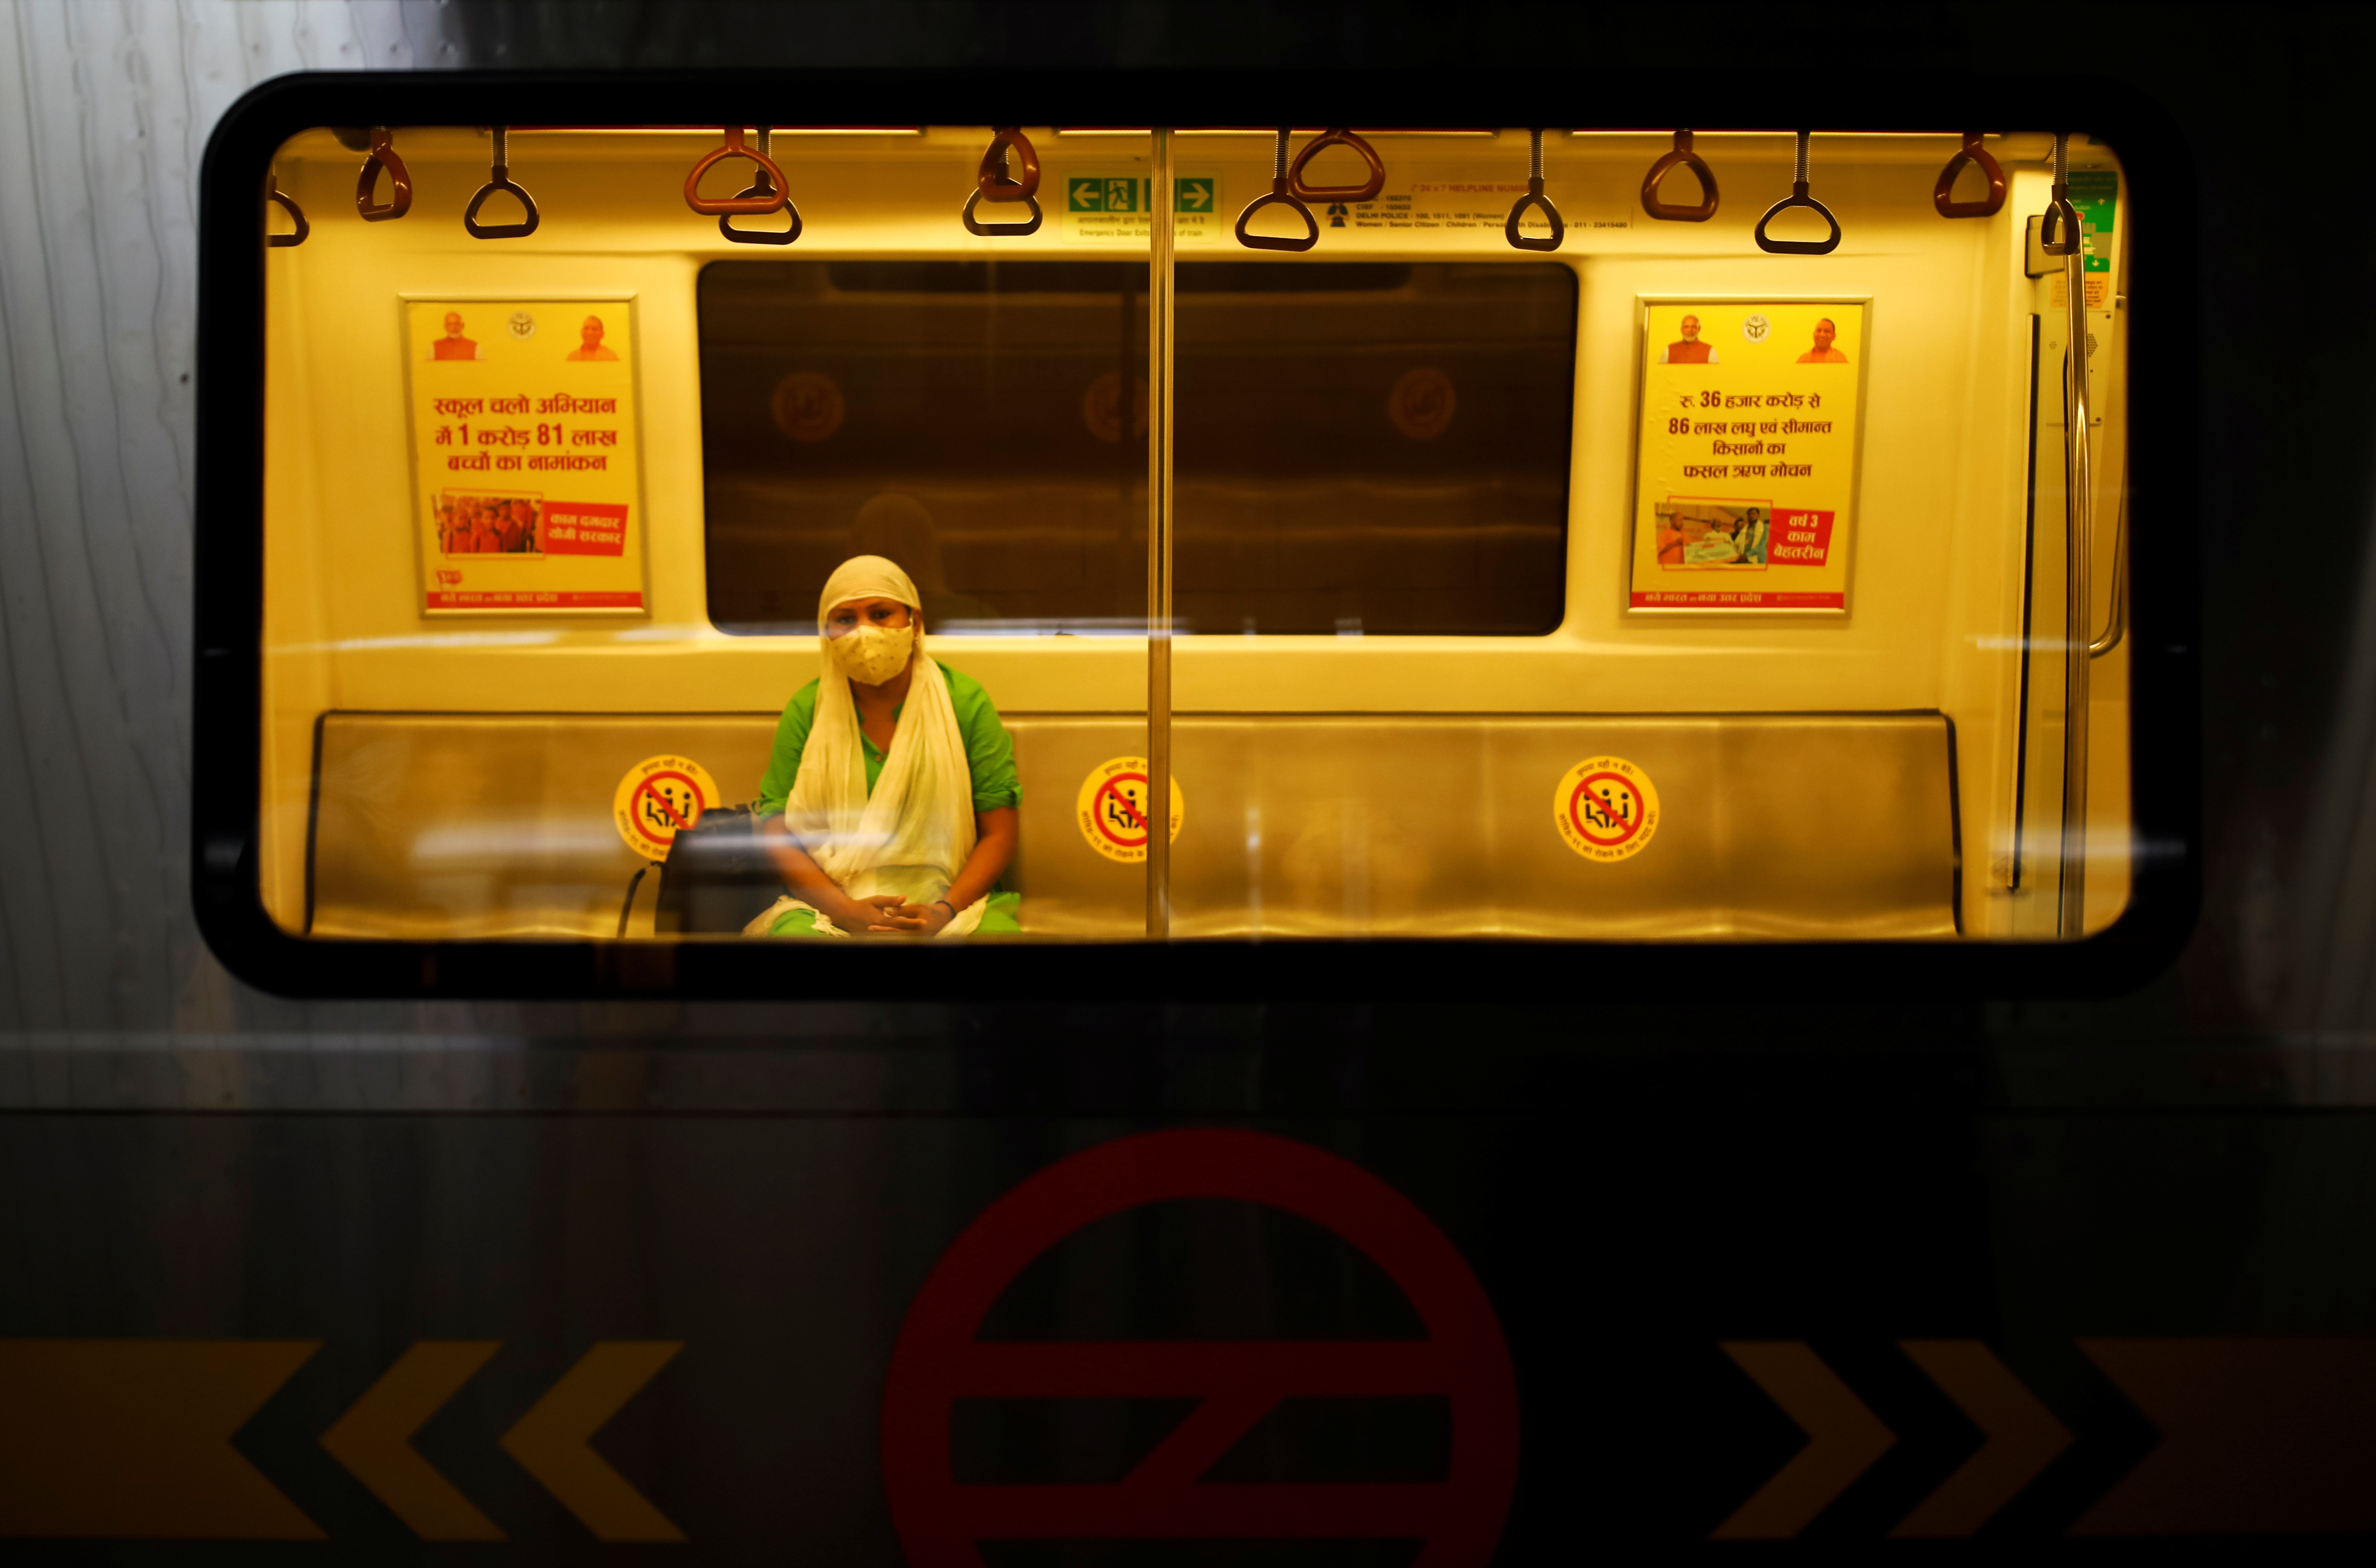 A woman wearing a face mask travels inside a Delhi metro train, on the first day of the restart of their operations, amidst the spread of coronavirus disease (COVID-19), in New Delhi, India, September 7, 2020. REUTERS/Adnan Abidi - RC2ITI9WIHTH